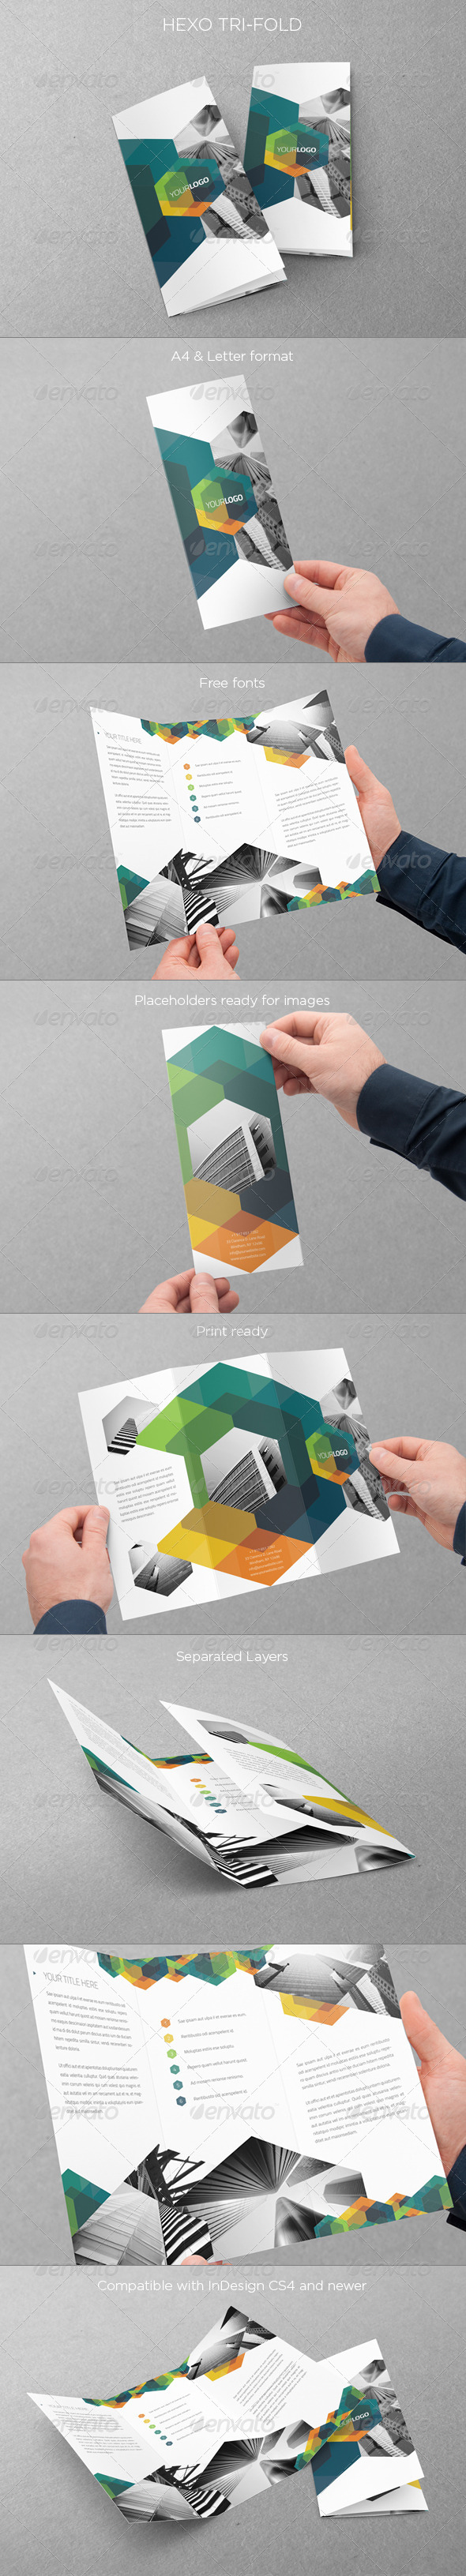 GraphicRiver Modern Hexo Trifold 5811088